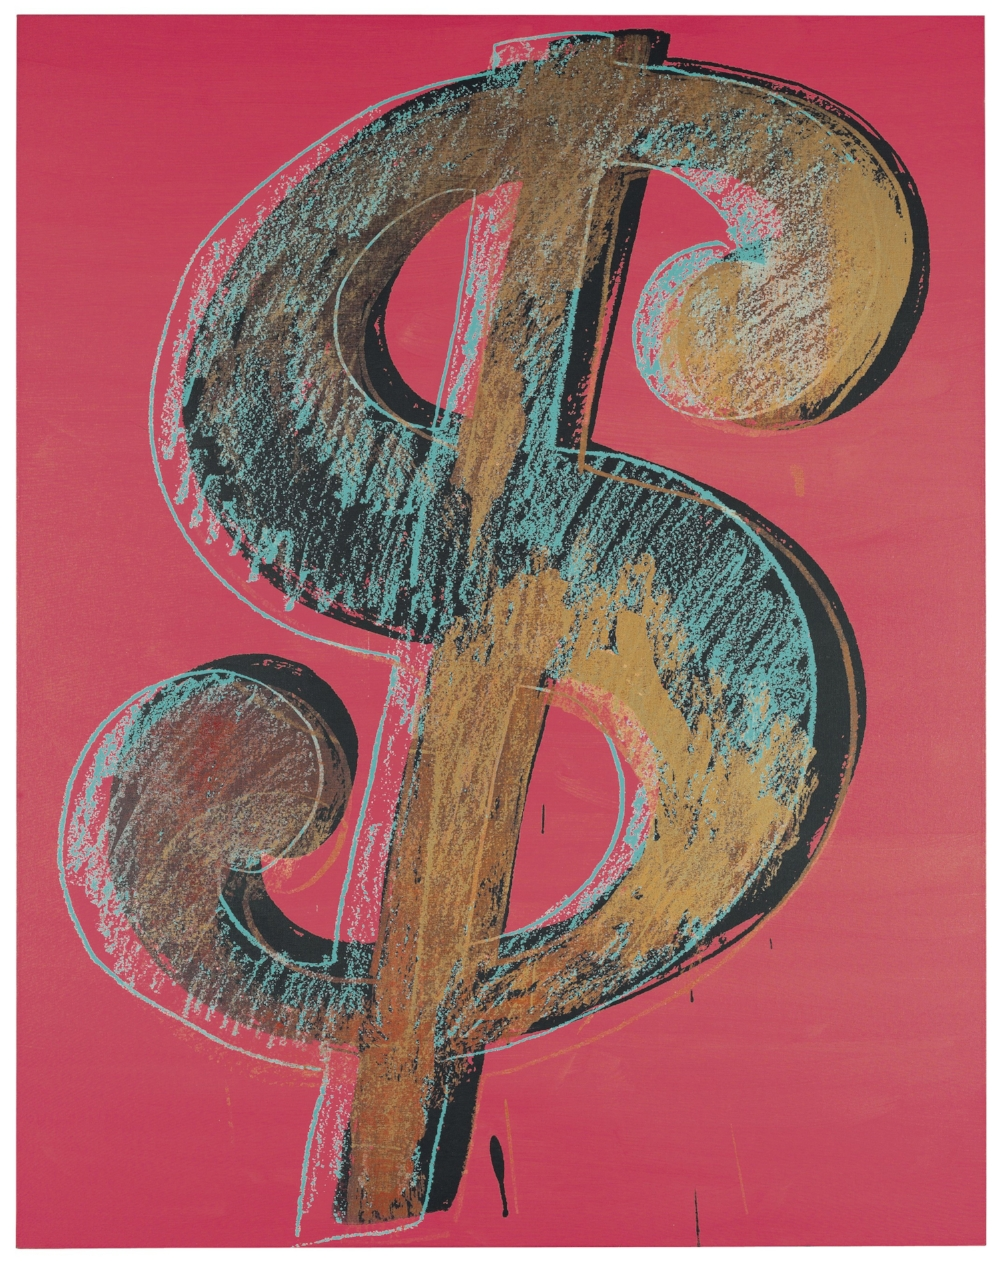 © 2017 The Andy Warhol Foundation for the Visual Arts, Inc. / Artists Rights Society (ARS), New York